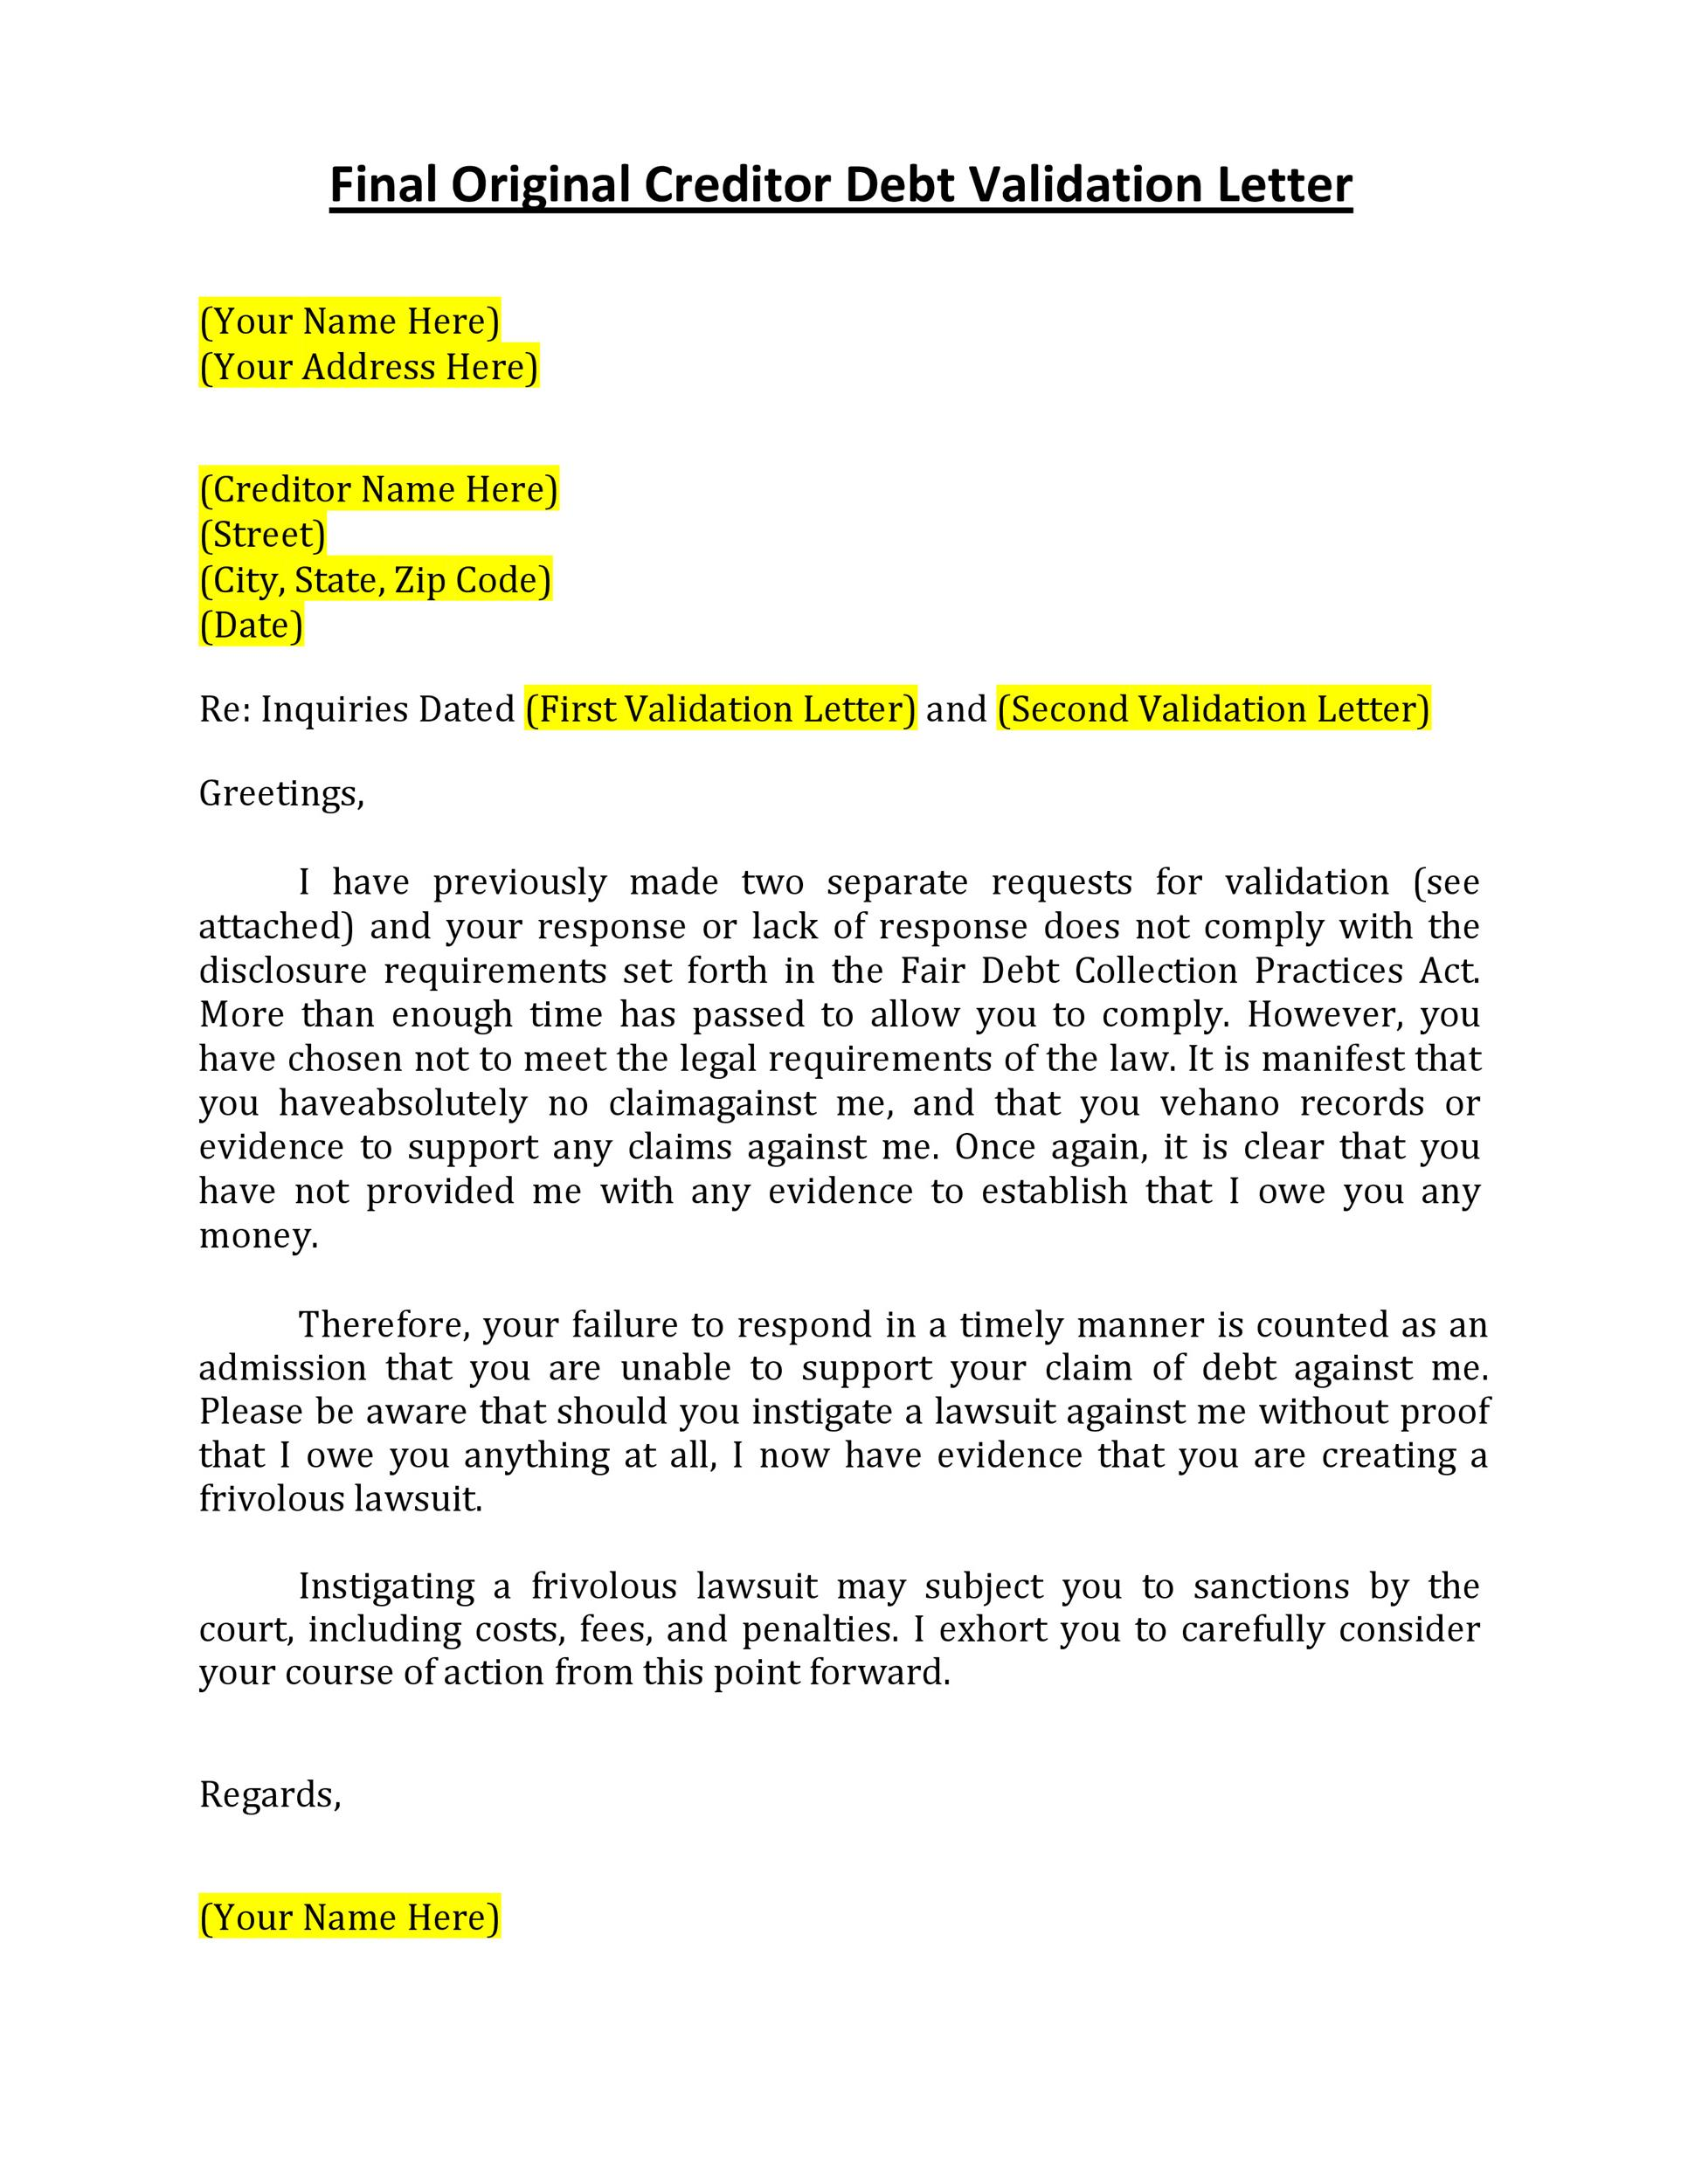 Free debt validation letter 11